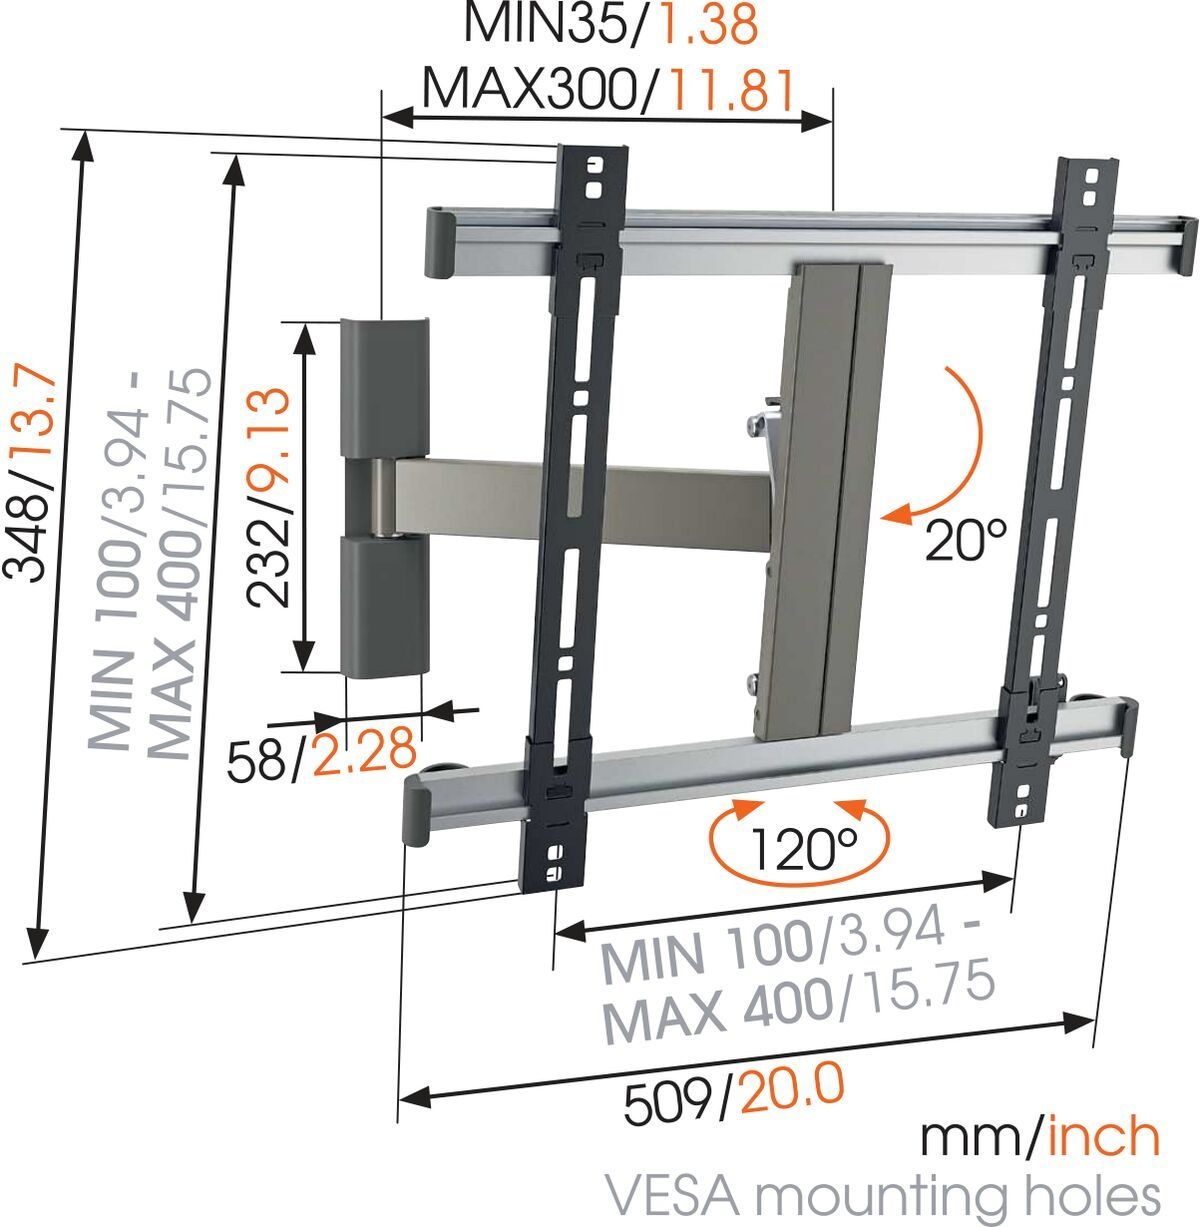 Vogel's THIN 225 UltraThin Full-Motion TV Wall Mount - Suitable for 26 up to 55 inch TVs - Motion (up to 120°) - Tilt up to 20° - Dimensions